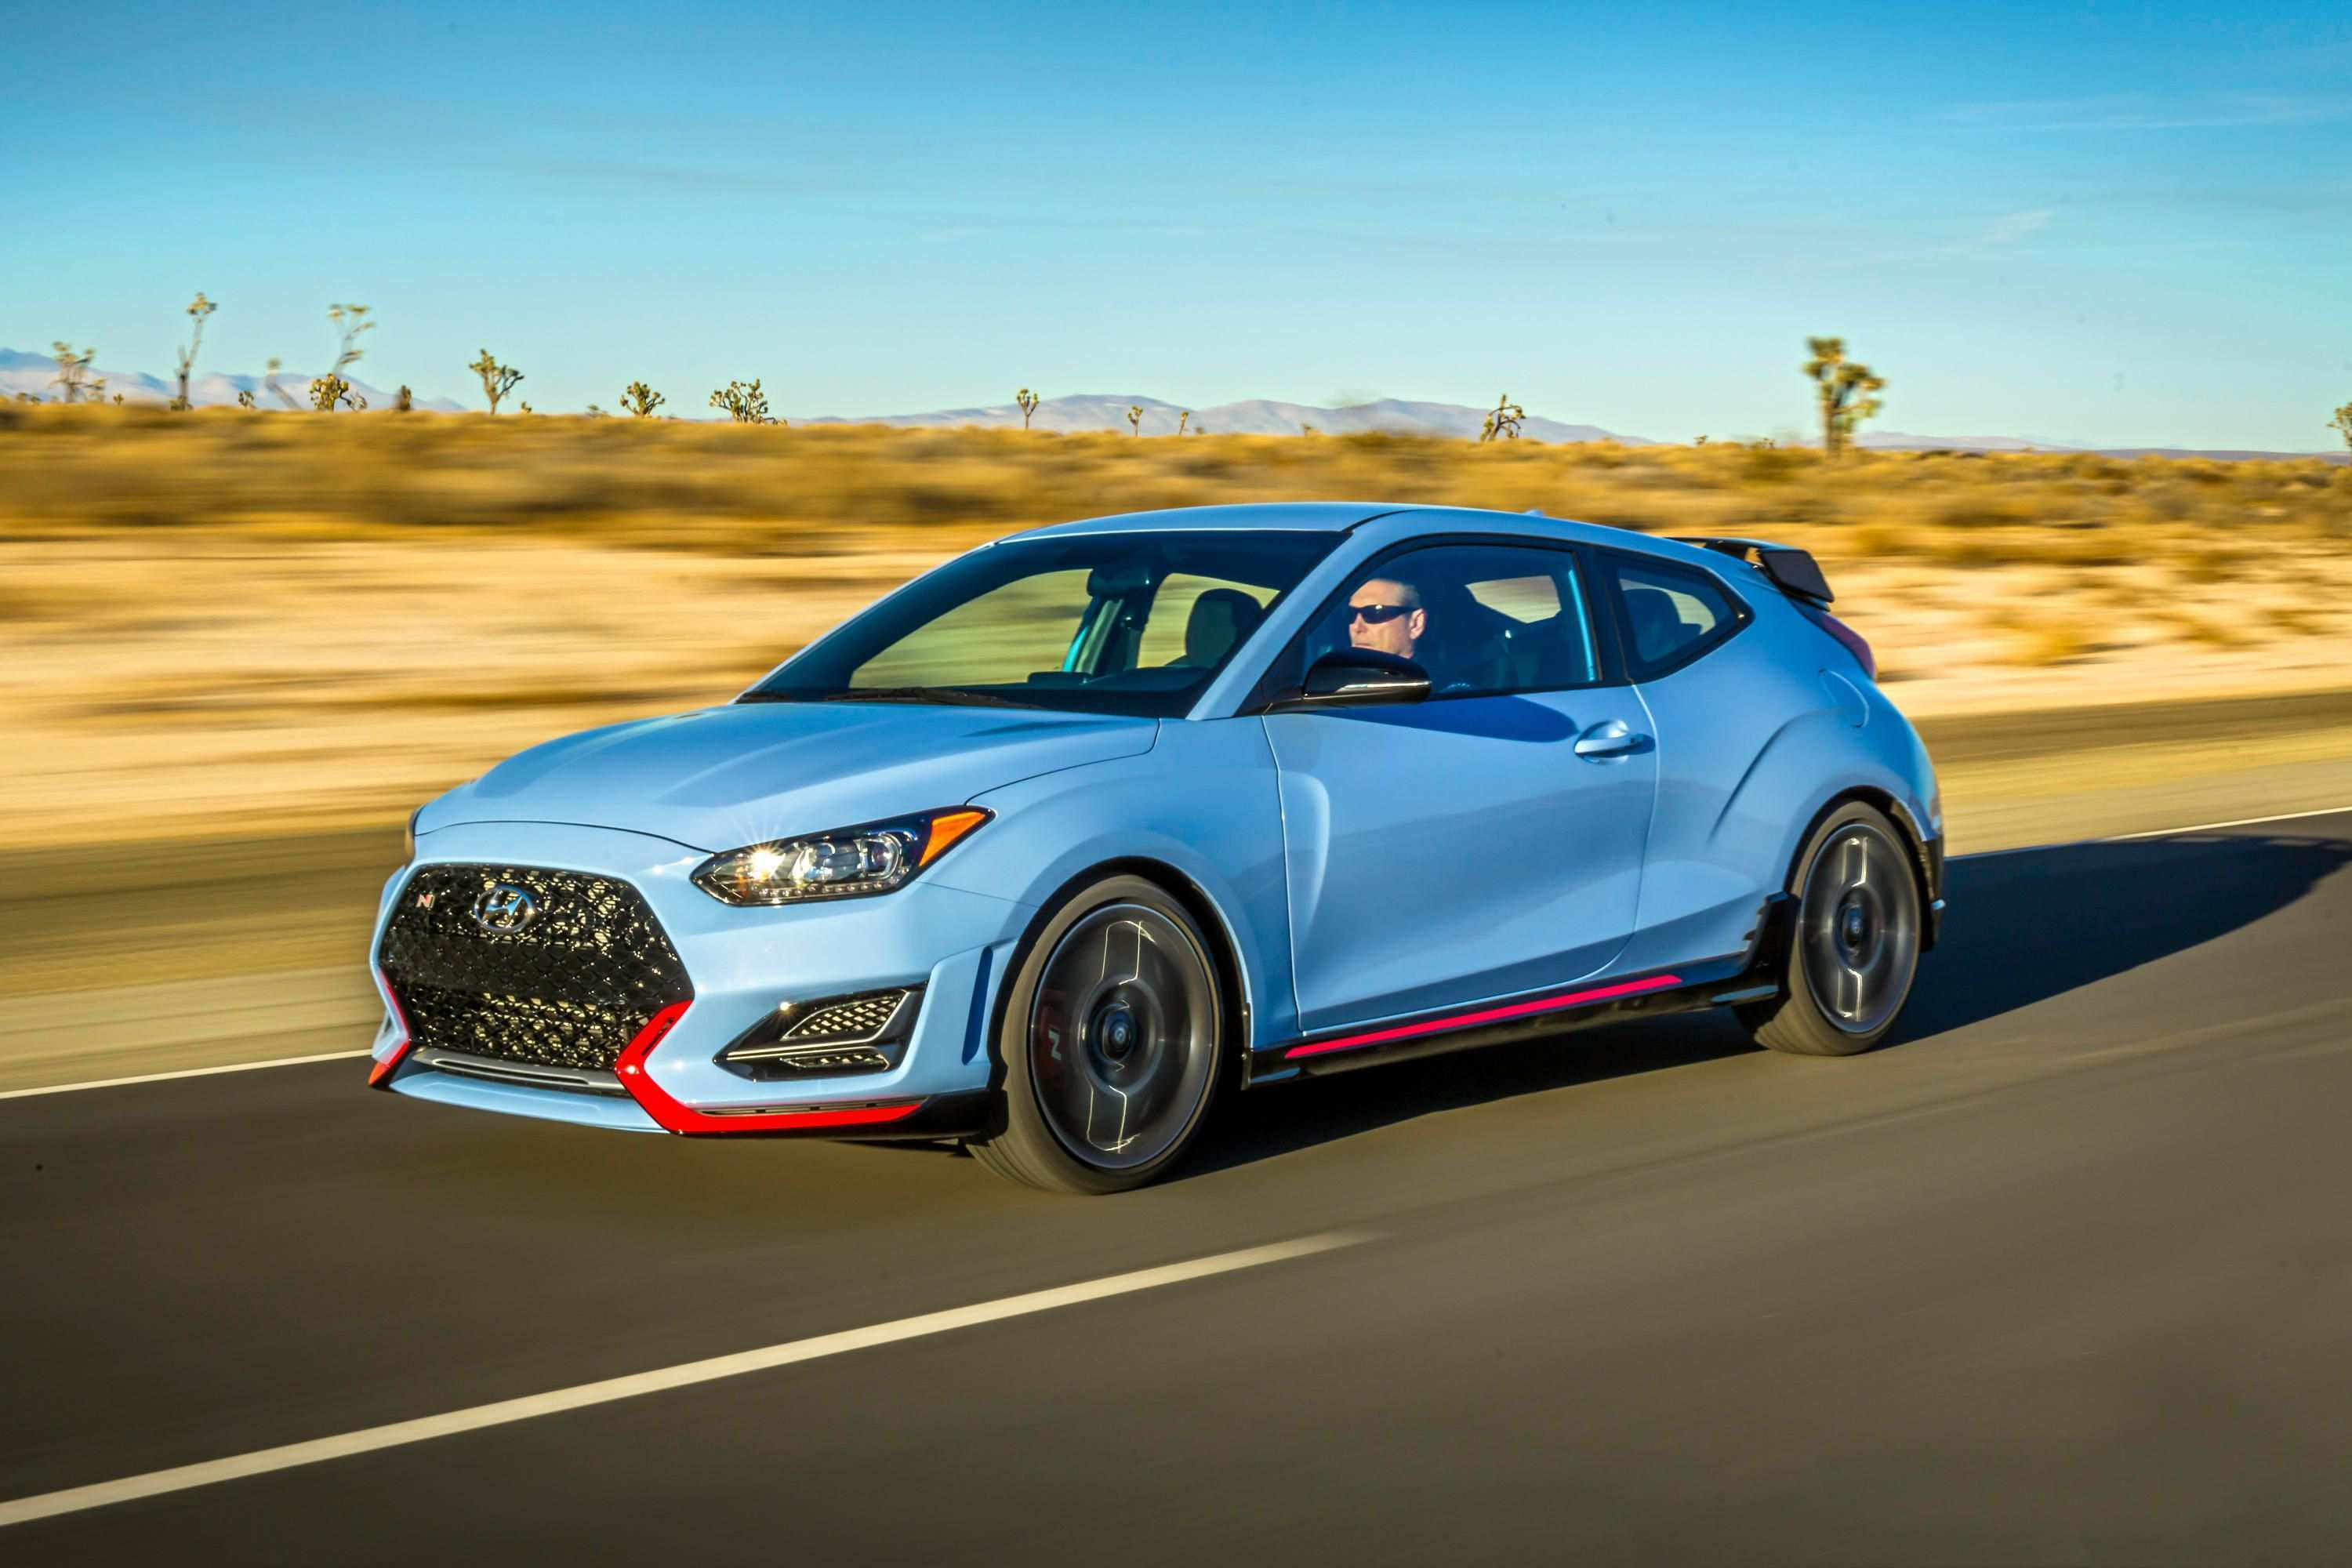 50 Great 2019 Hyundai Veloster N Picture for 2019 Hyundai Veloster N